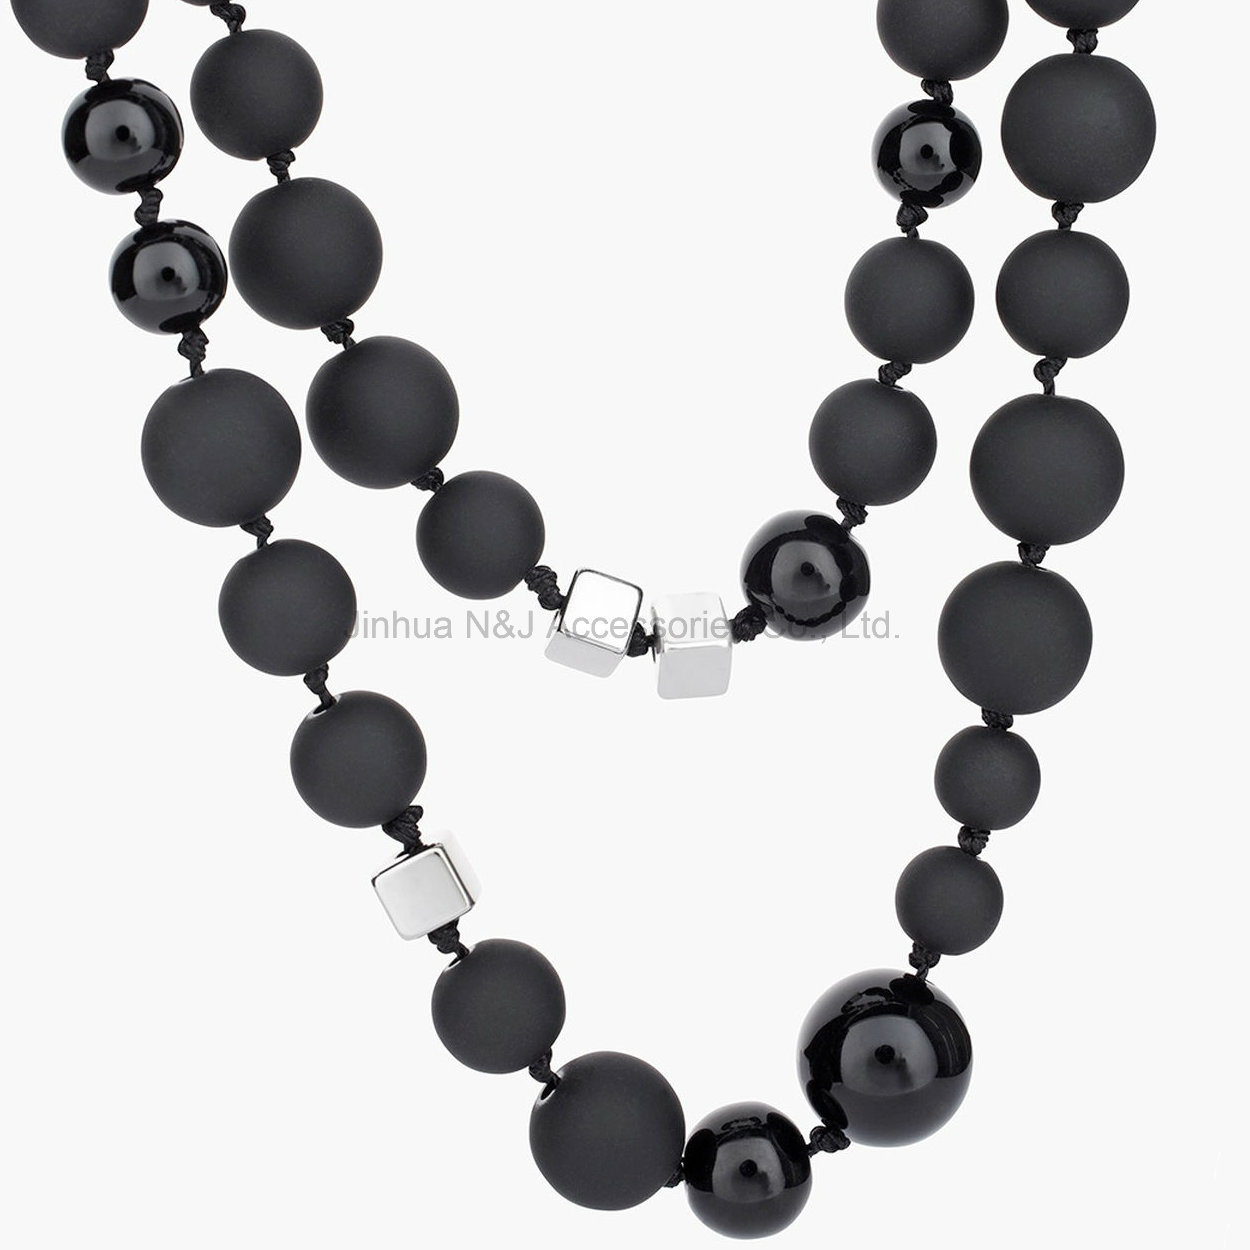 Food Grade Silicone Teething Black Beads Necklace for Mom Baby Silicone Nursing Necklaces with Square Beads